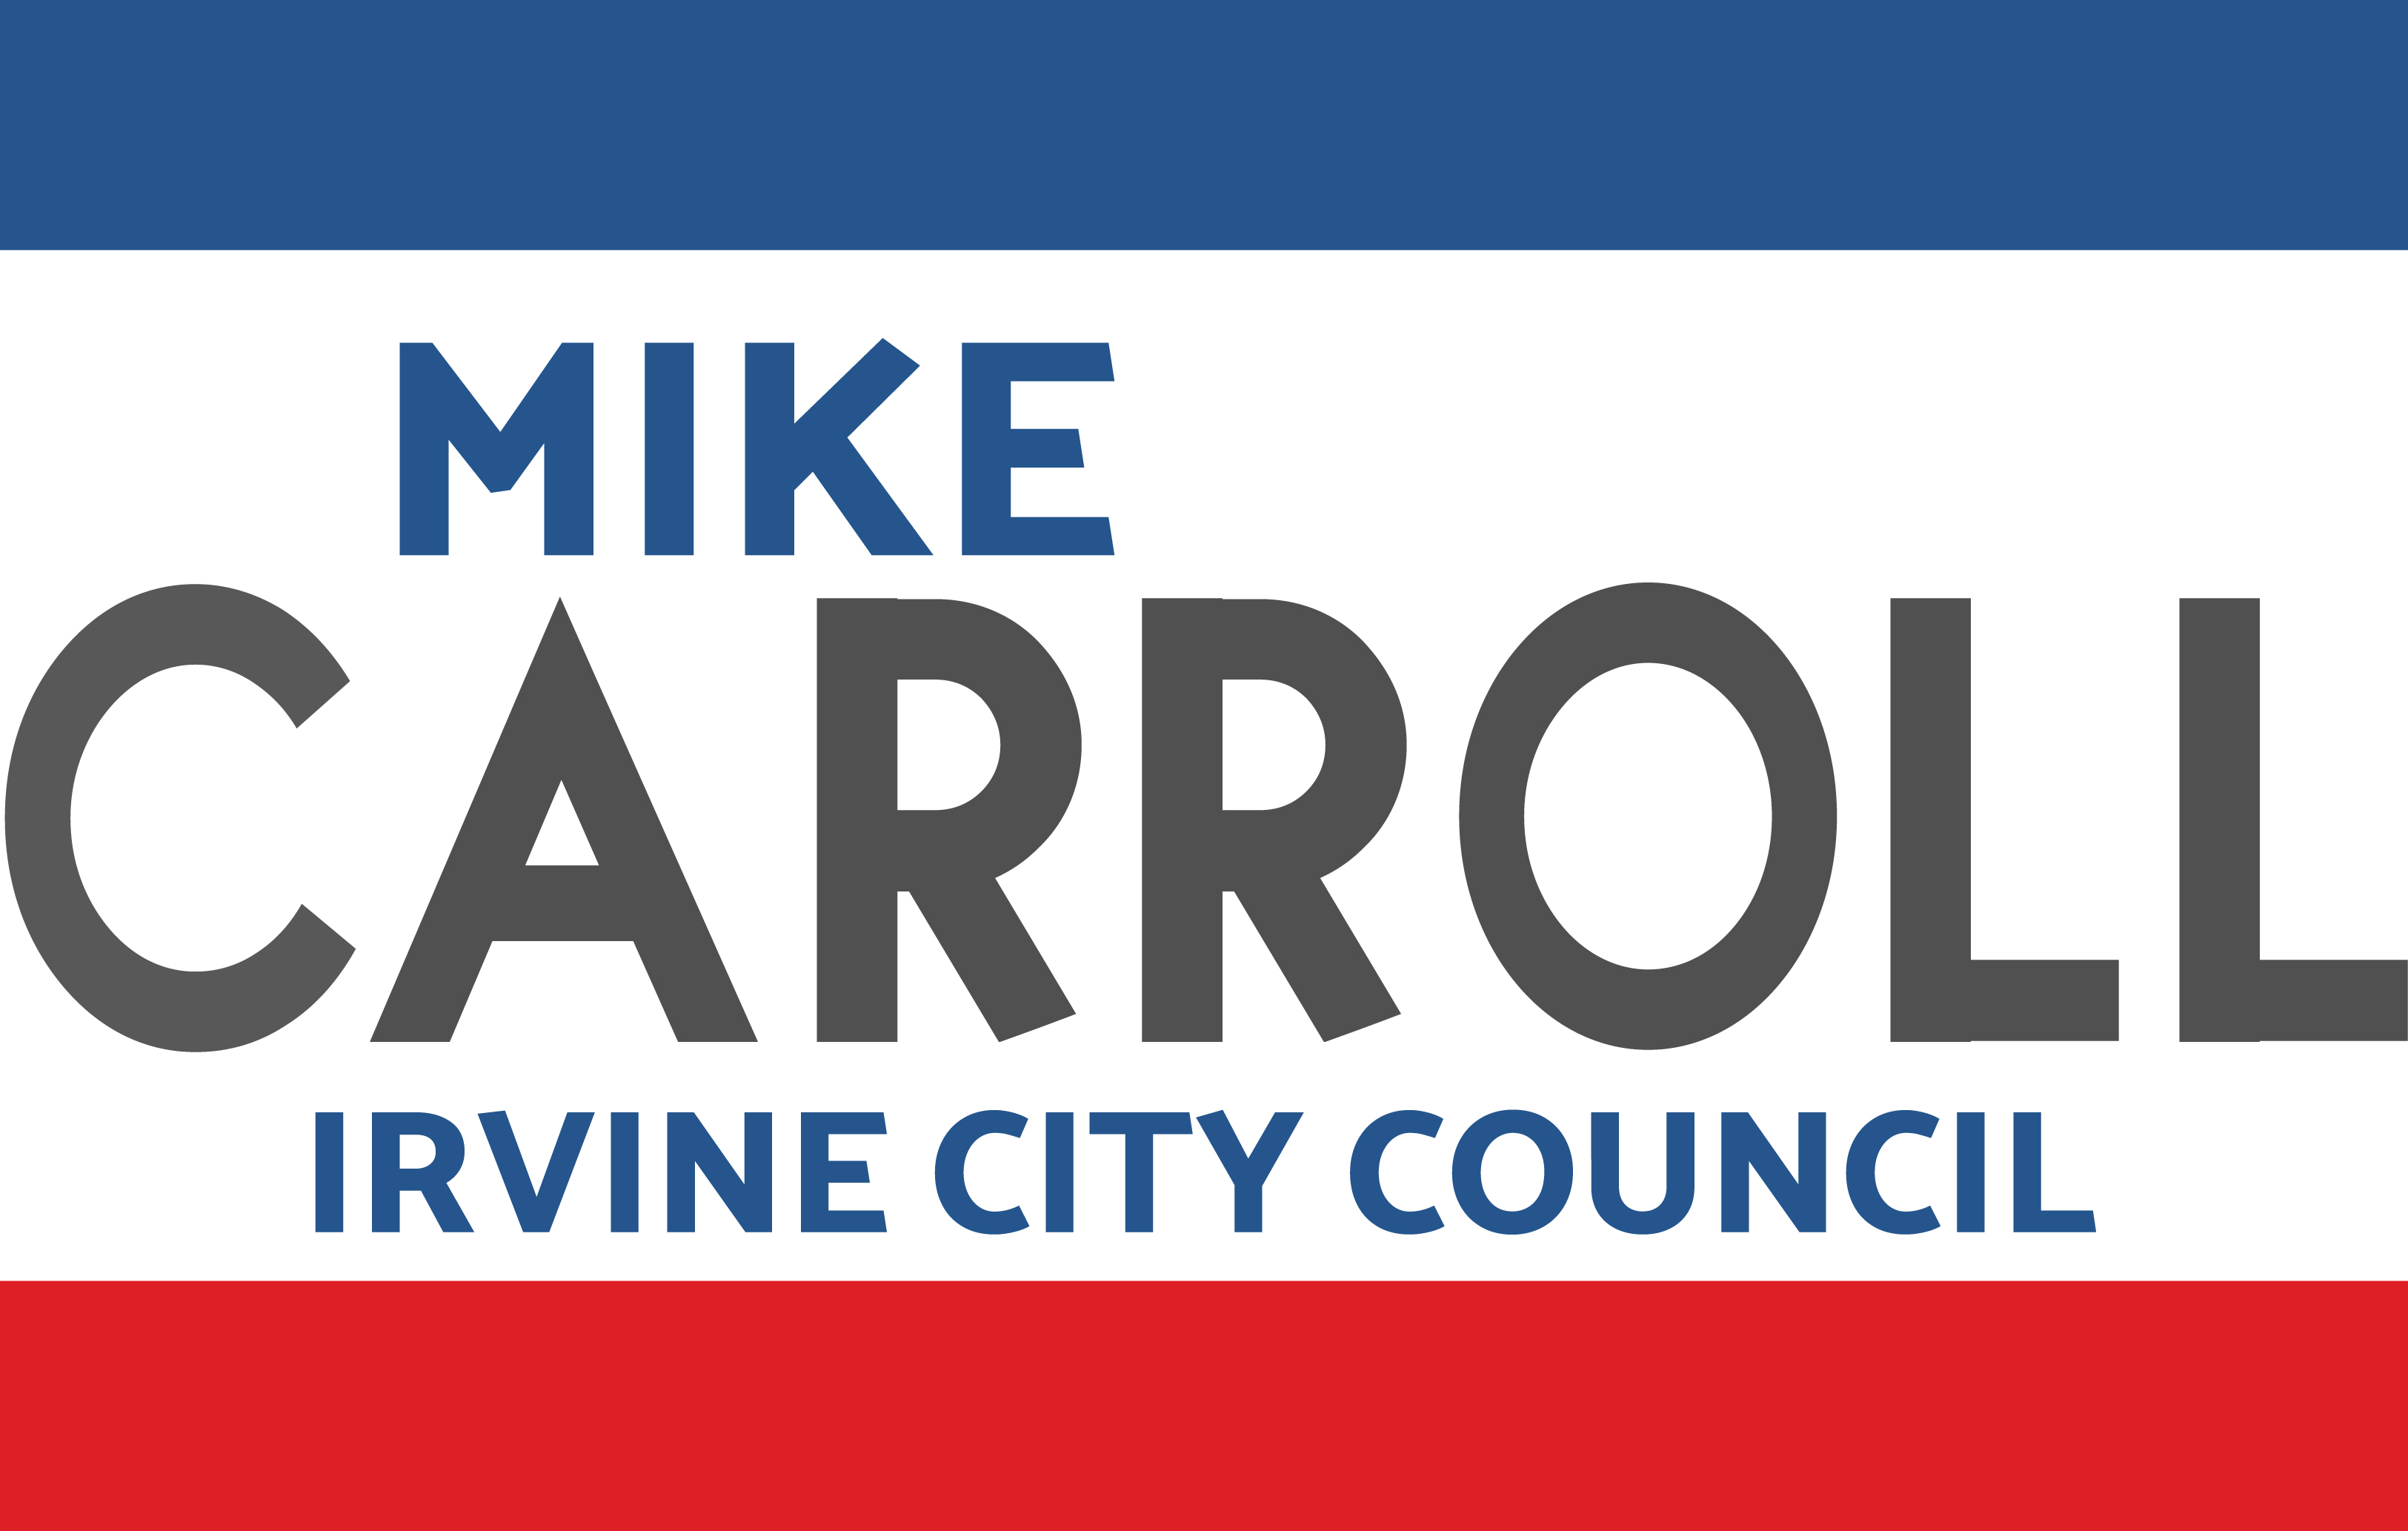 Mike Carroll for Irvine City Council